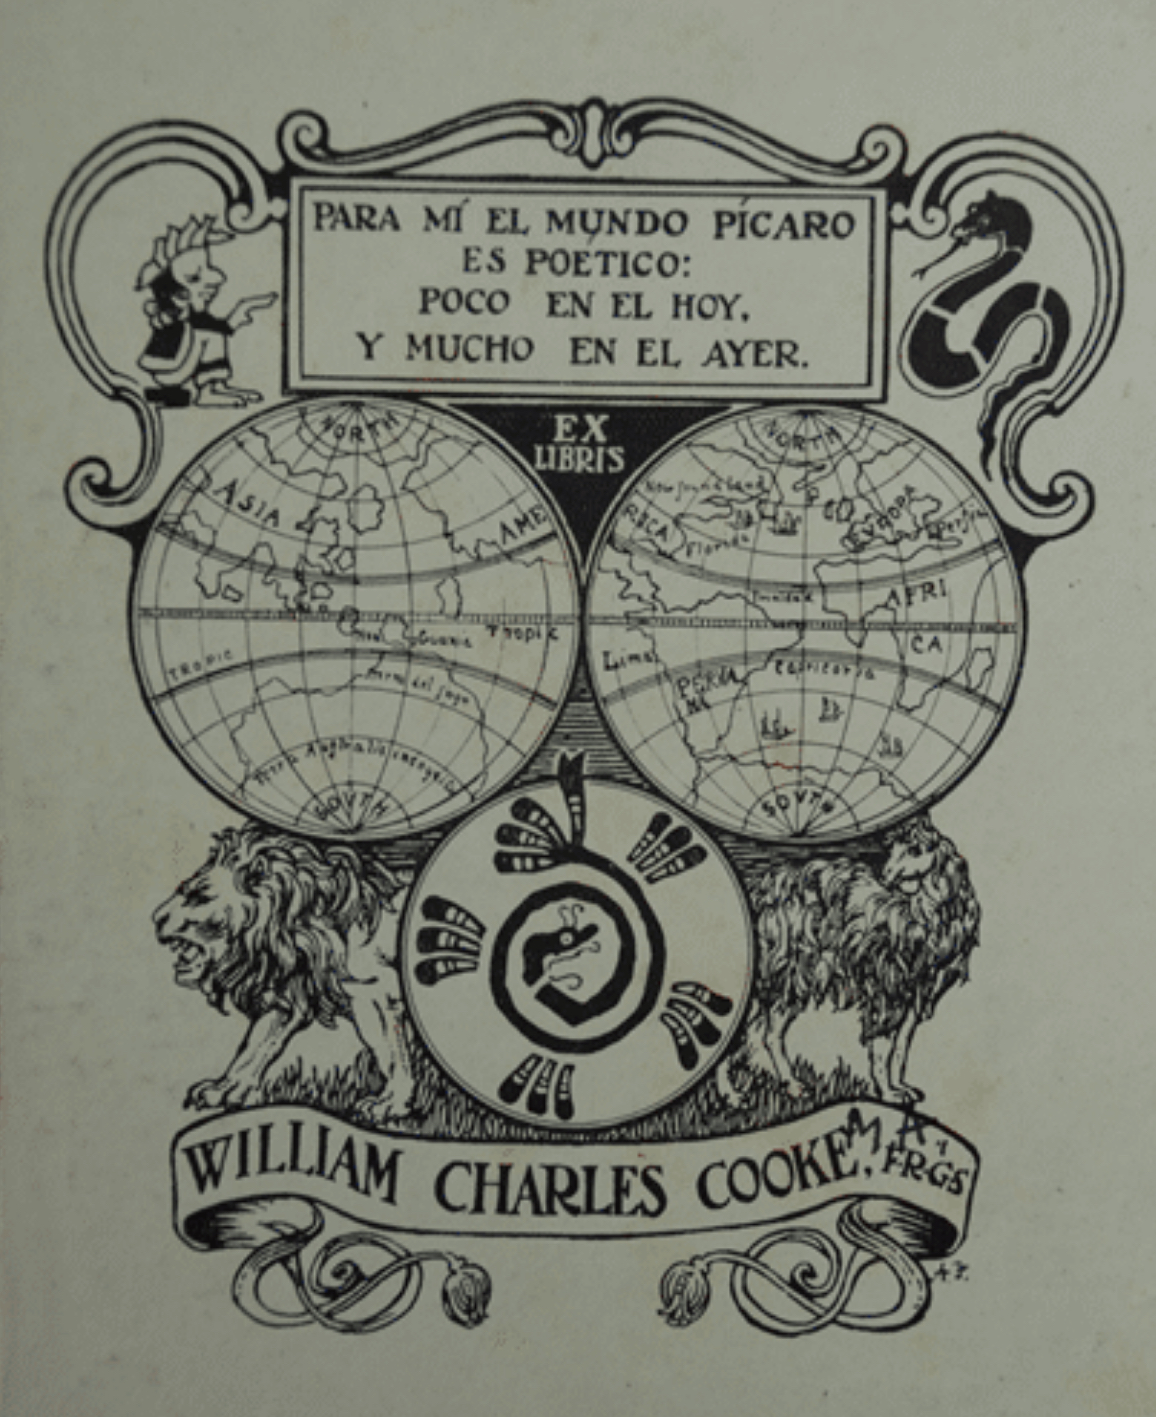 Bookplate with a motto on top, underneath two world globes placed on two lions. At the bottom is the name 'William Charles Cooke'.